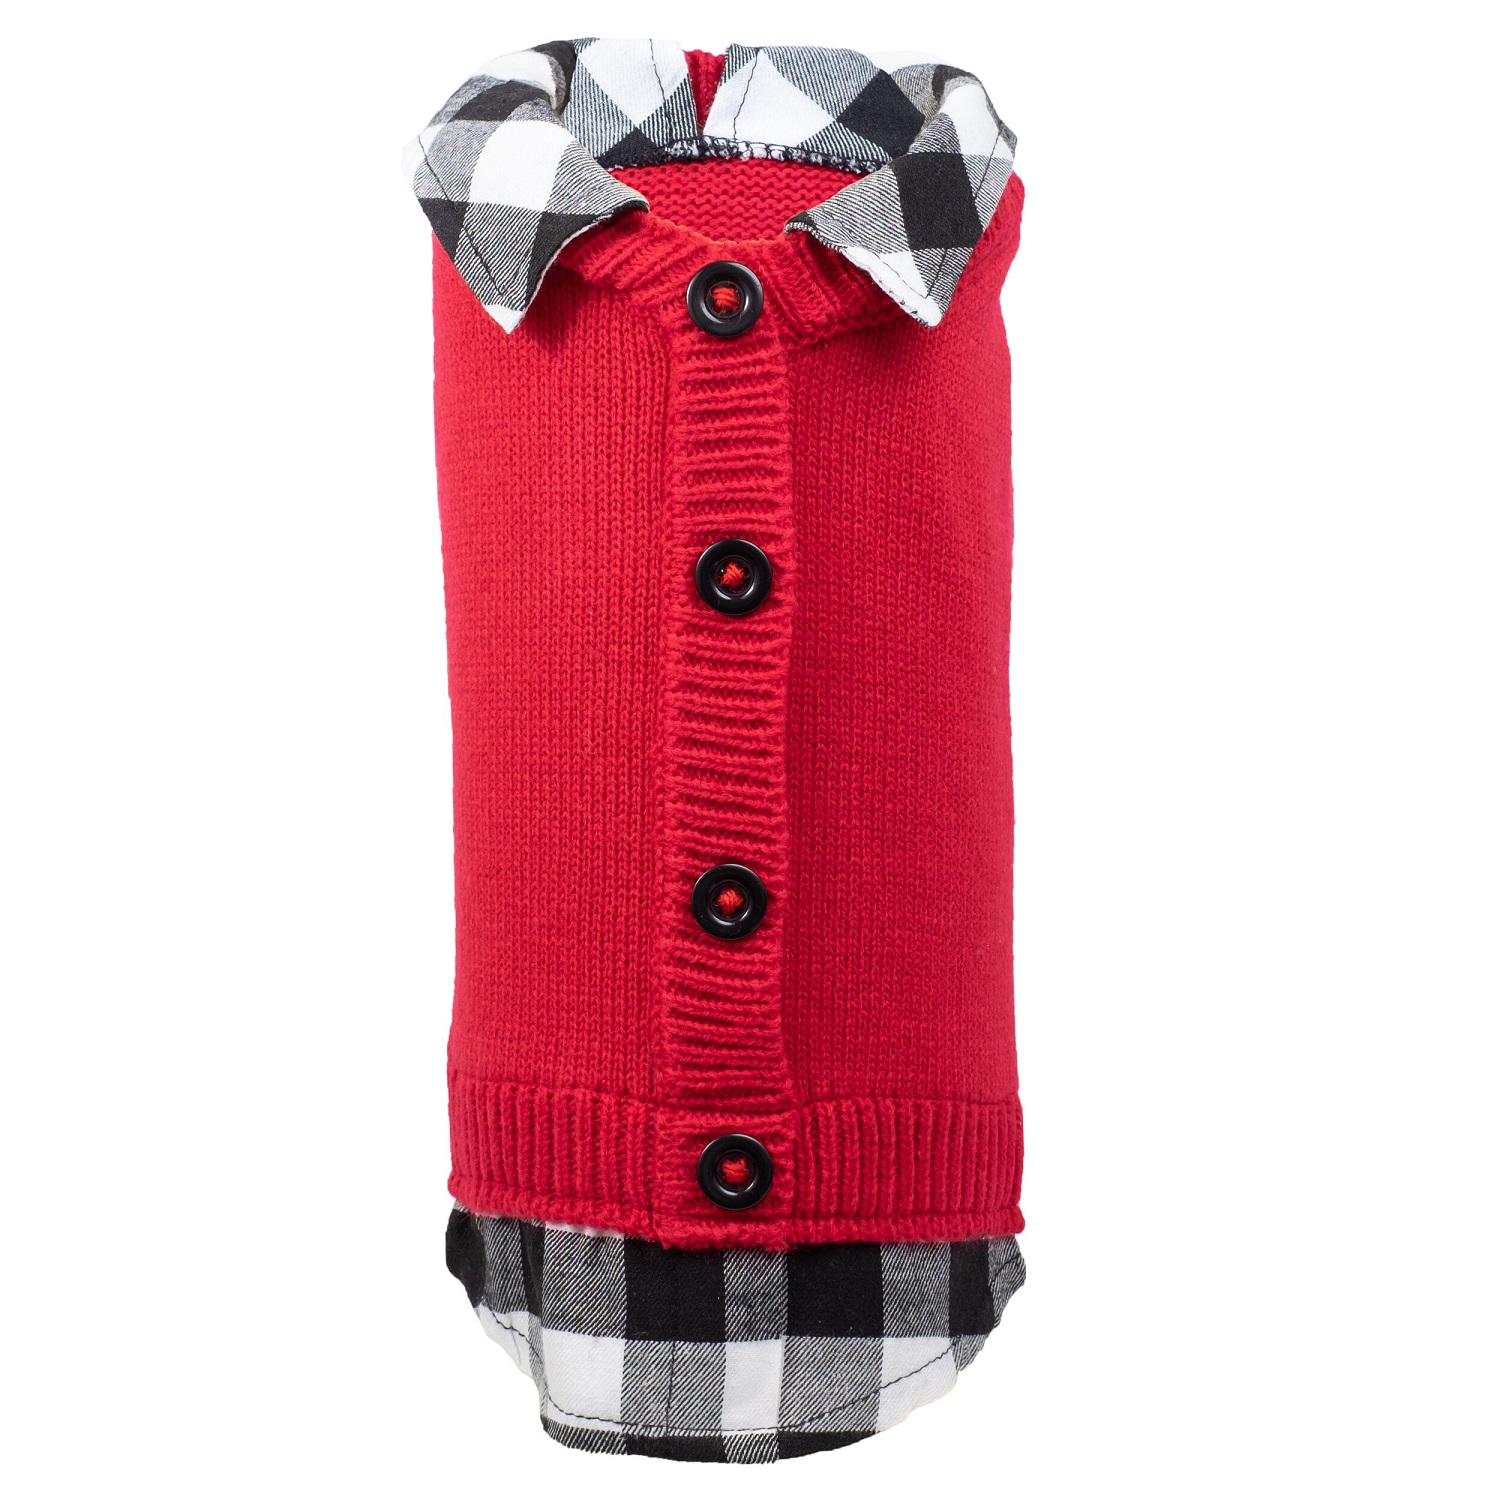 The Worthy Dog Cardigan, Two fer Red & Buffalo, X-Small